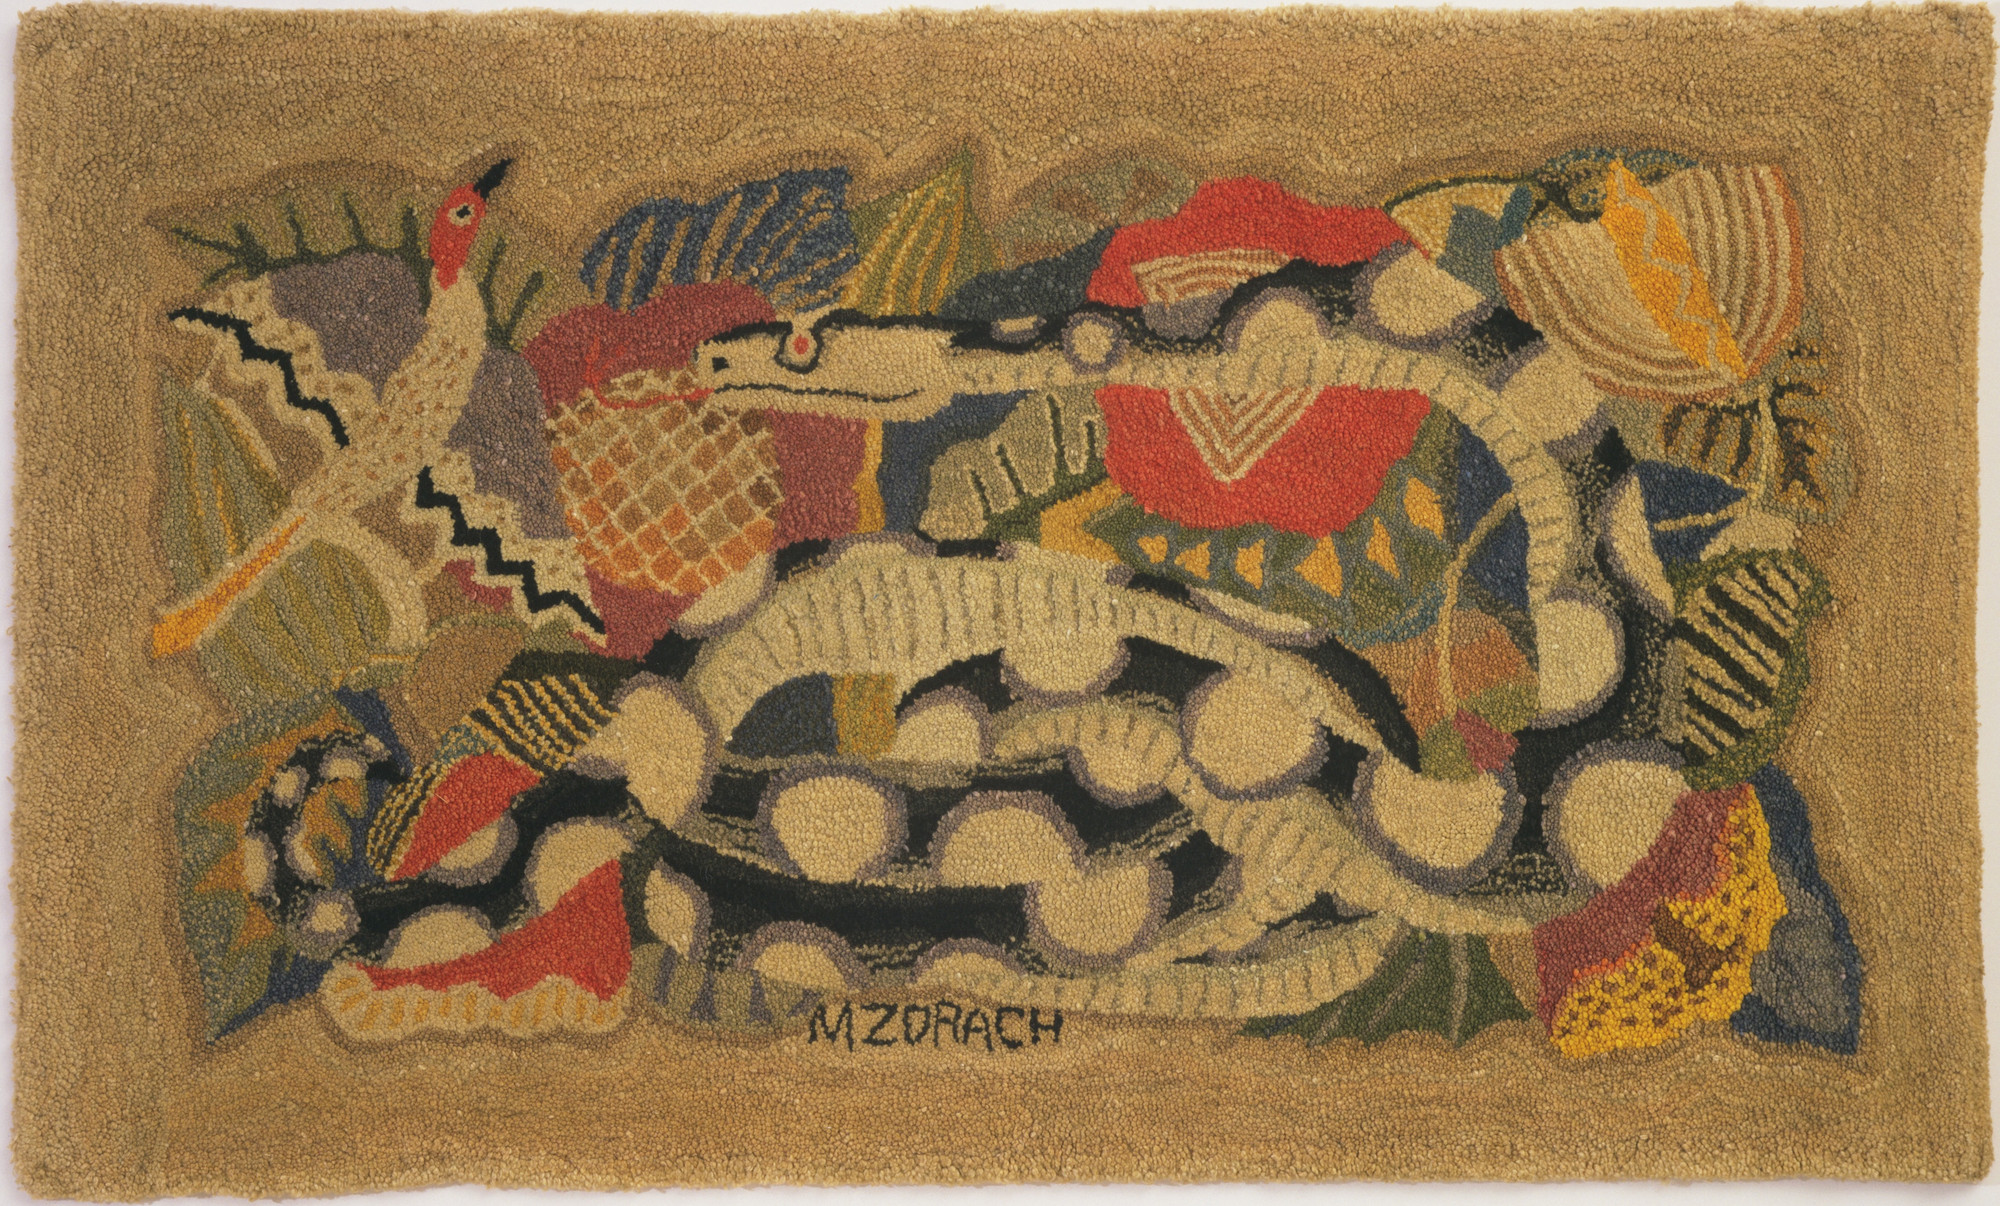 Marguerite Zorach. The Jungle. 1936